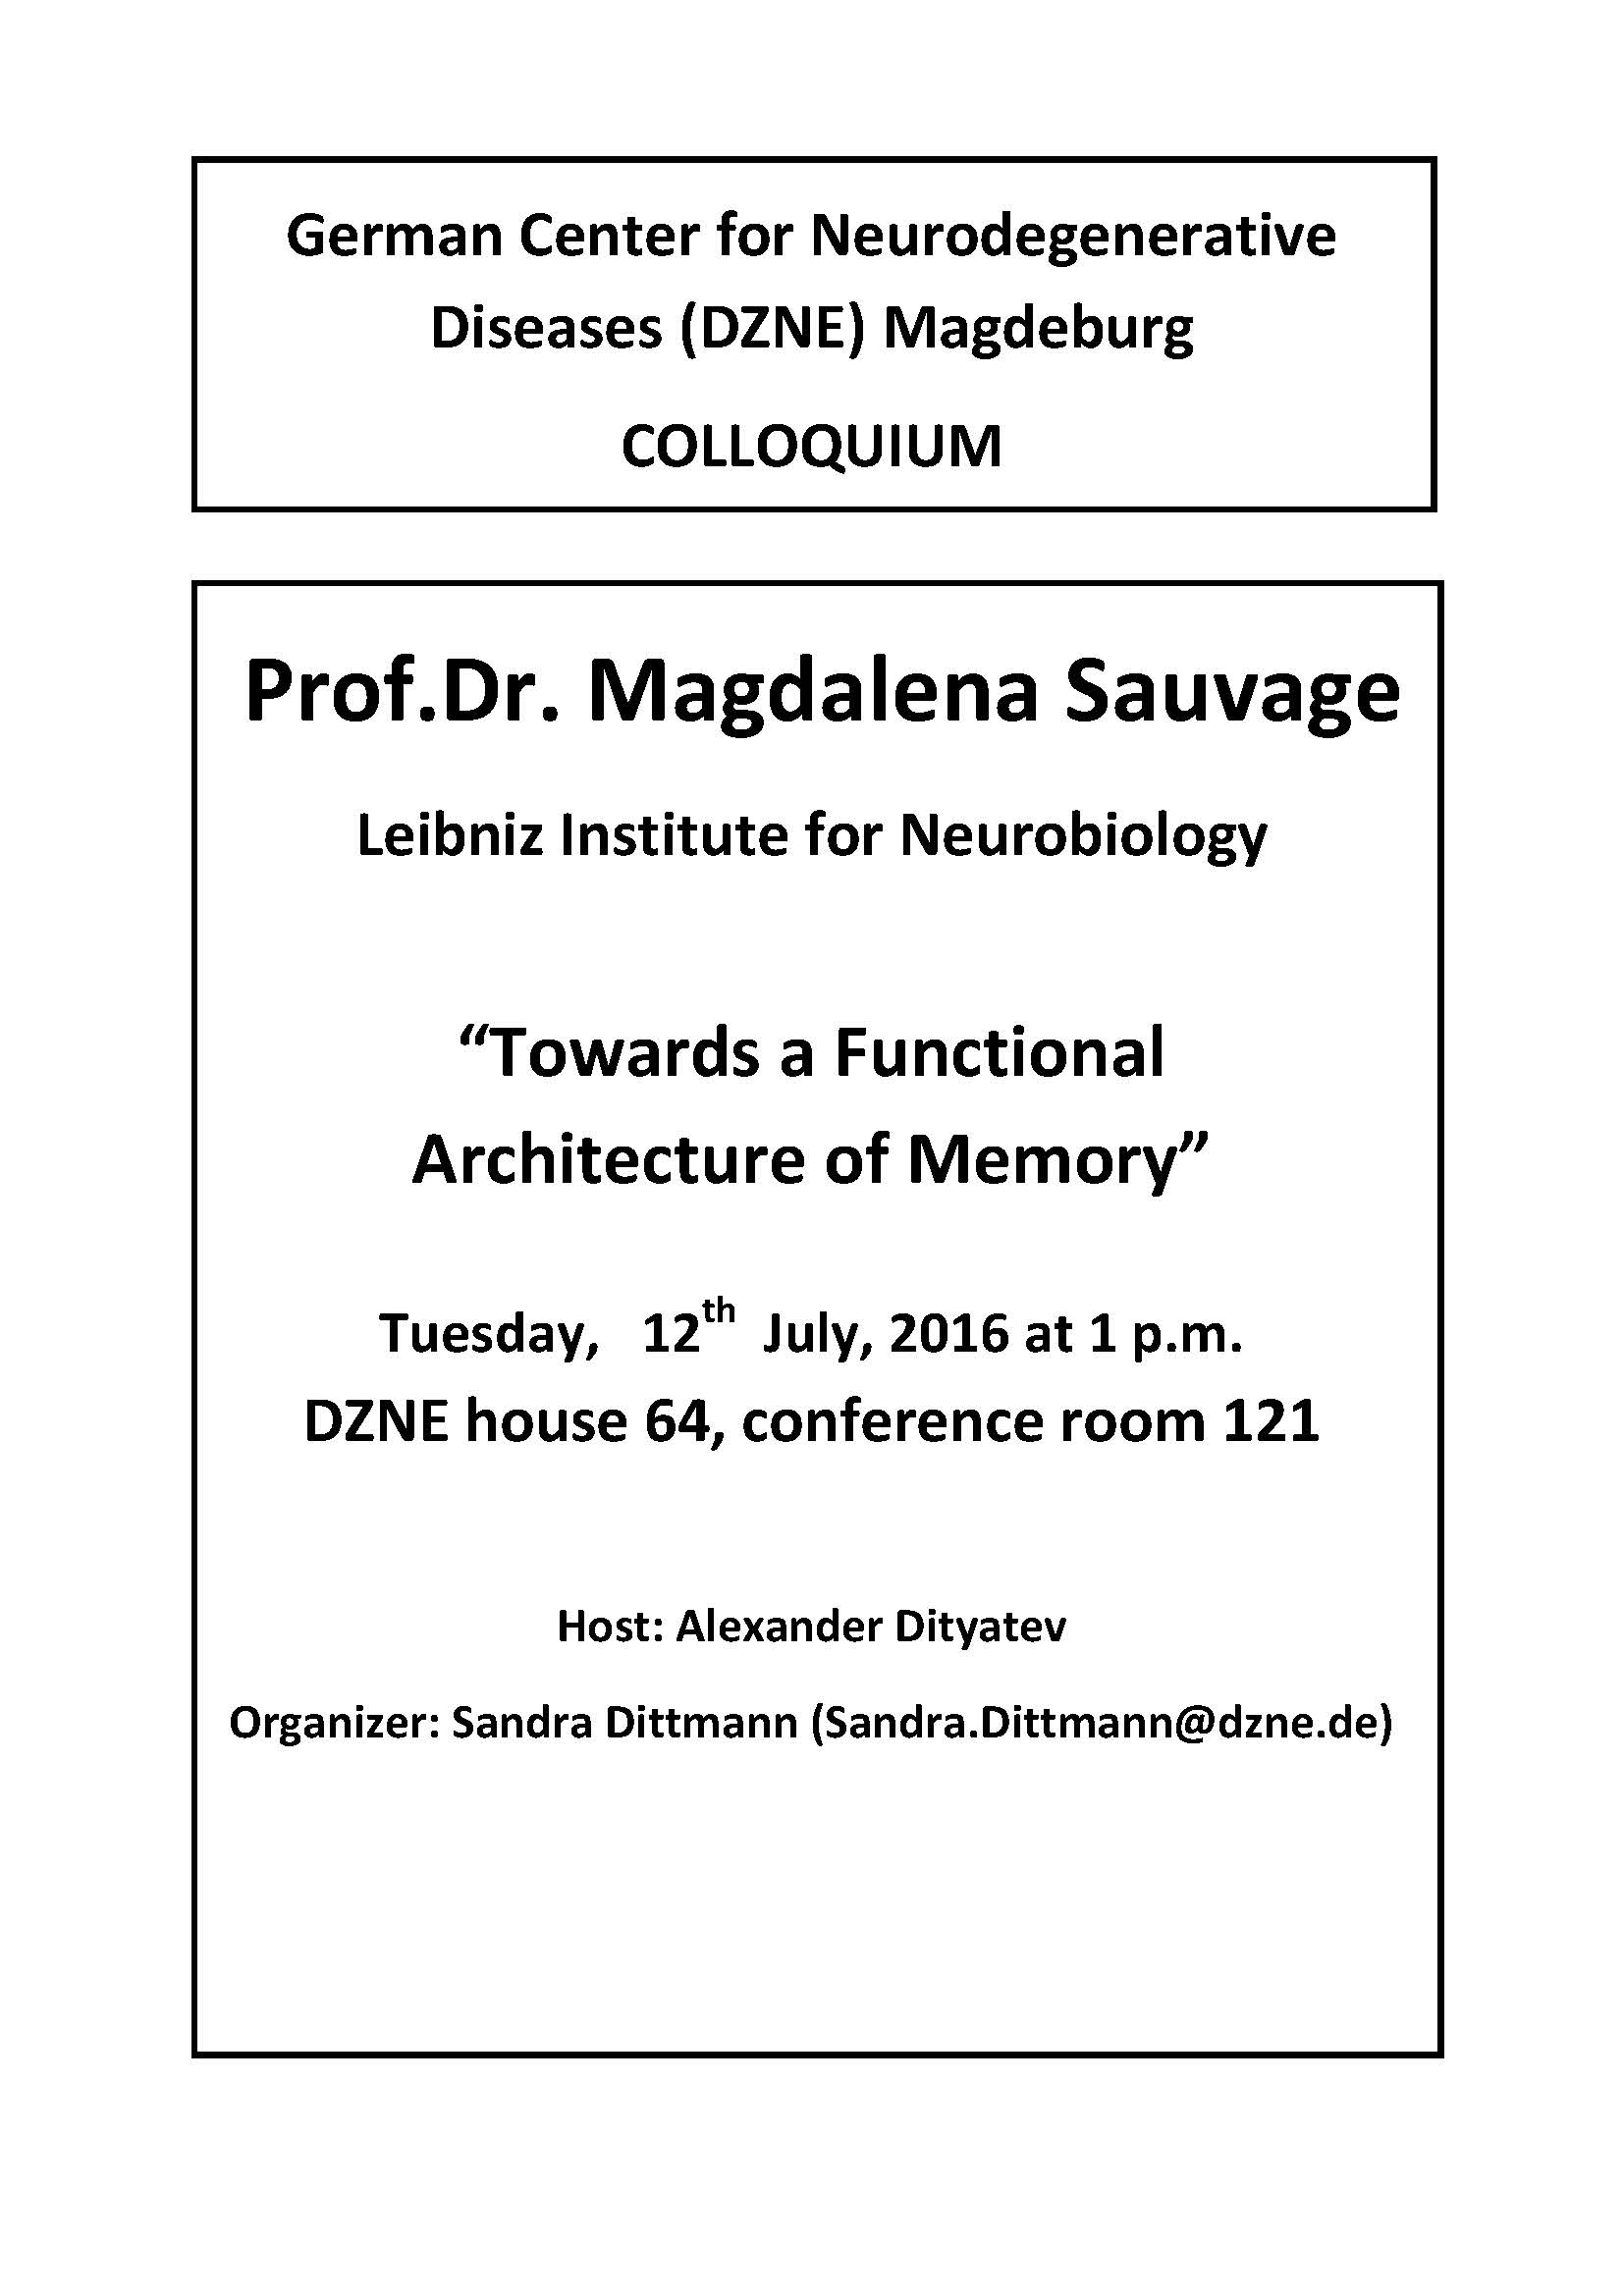 20160712 Prof.Dr.Magdalena Sauvage